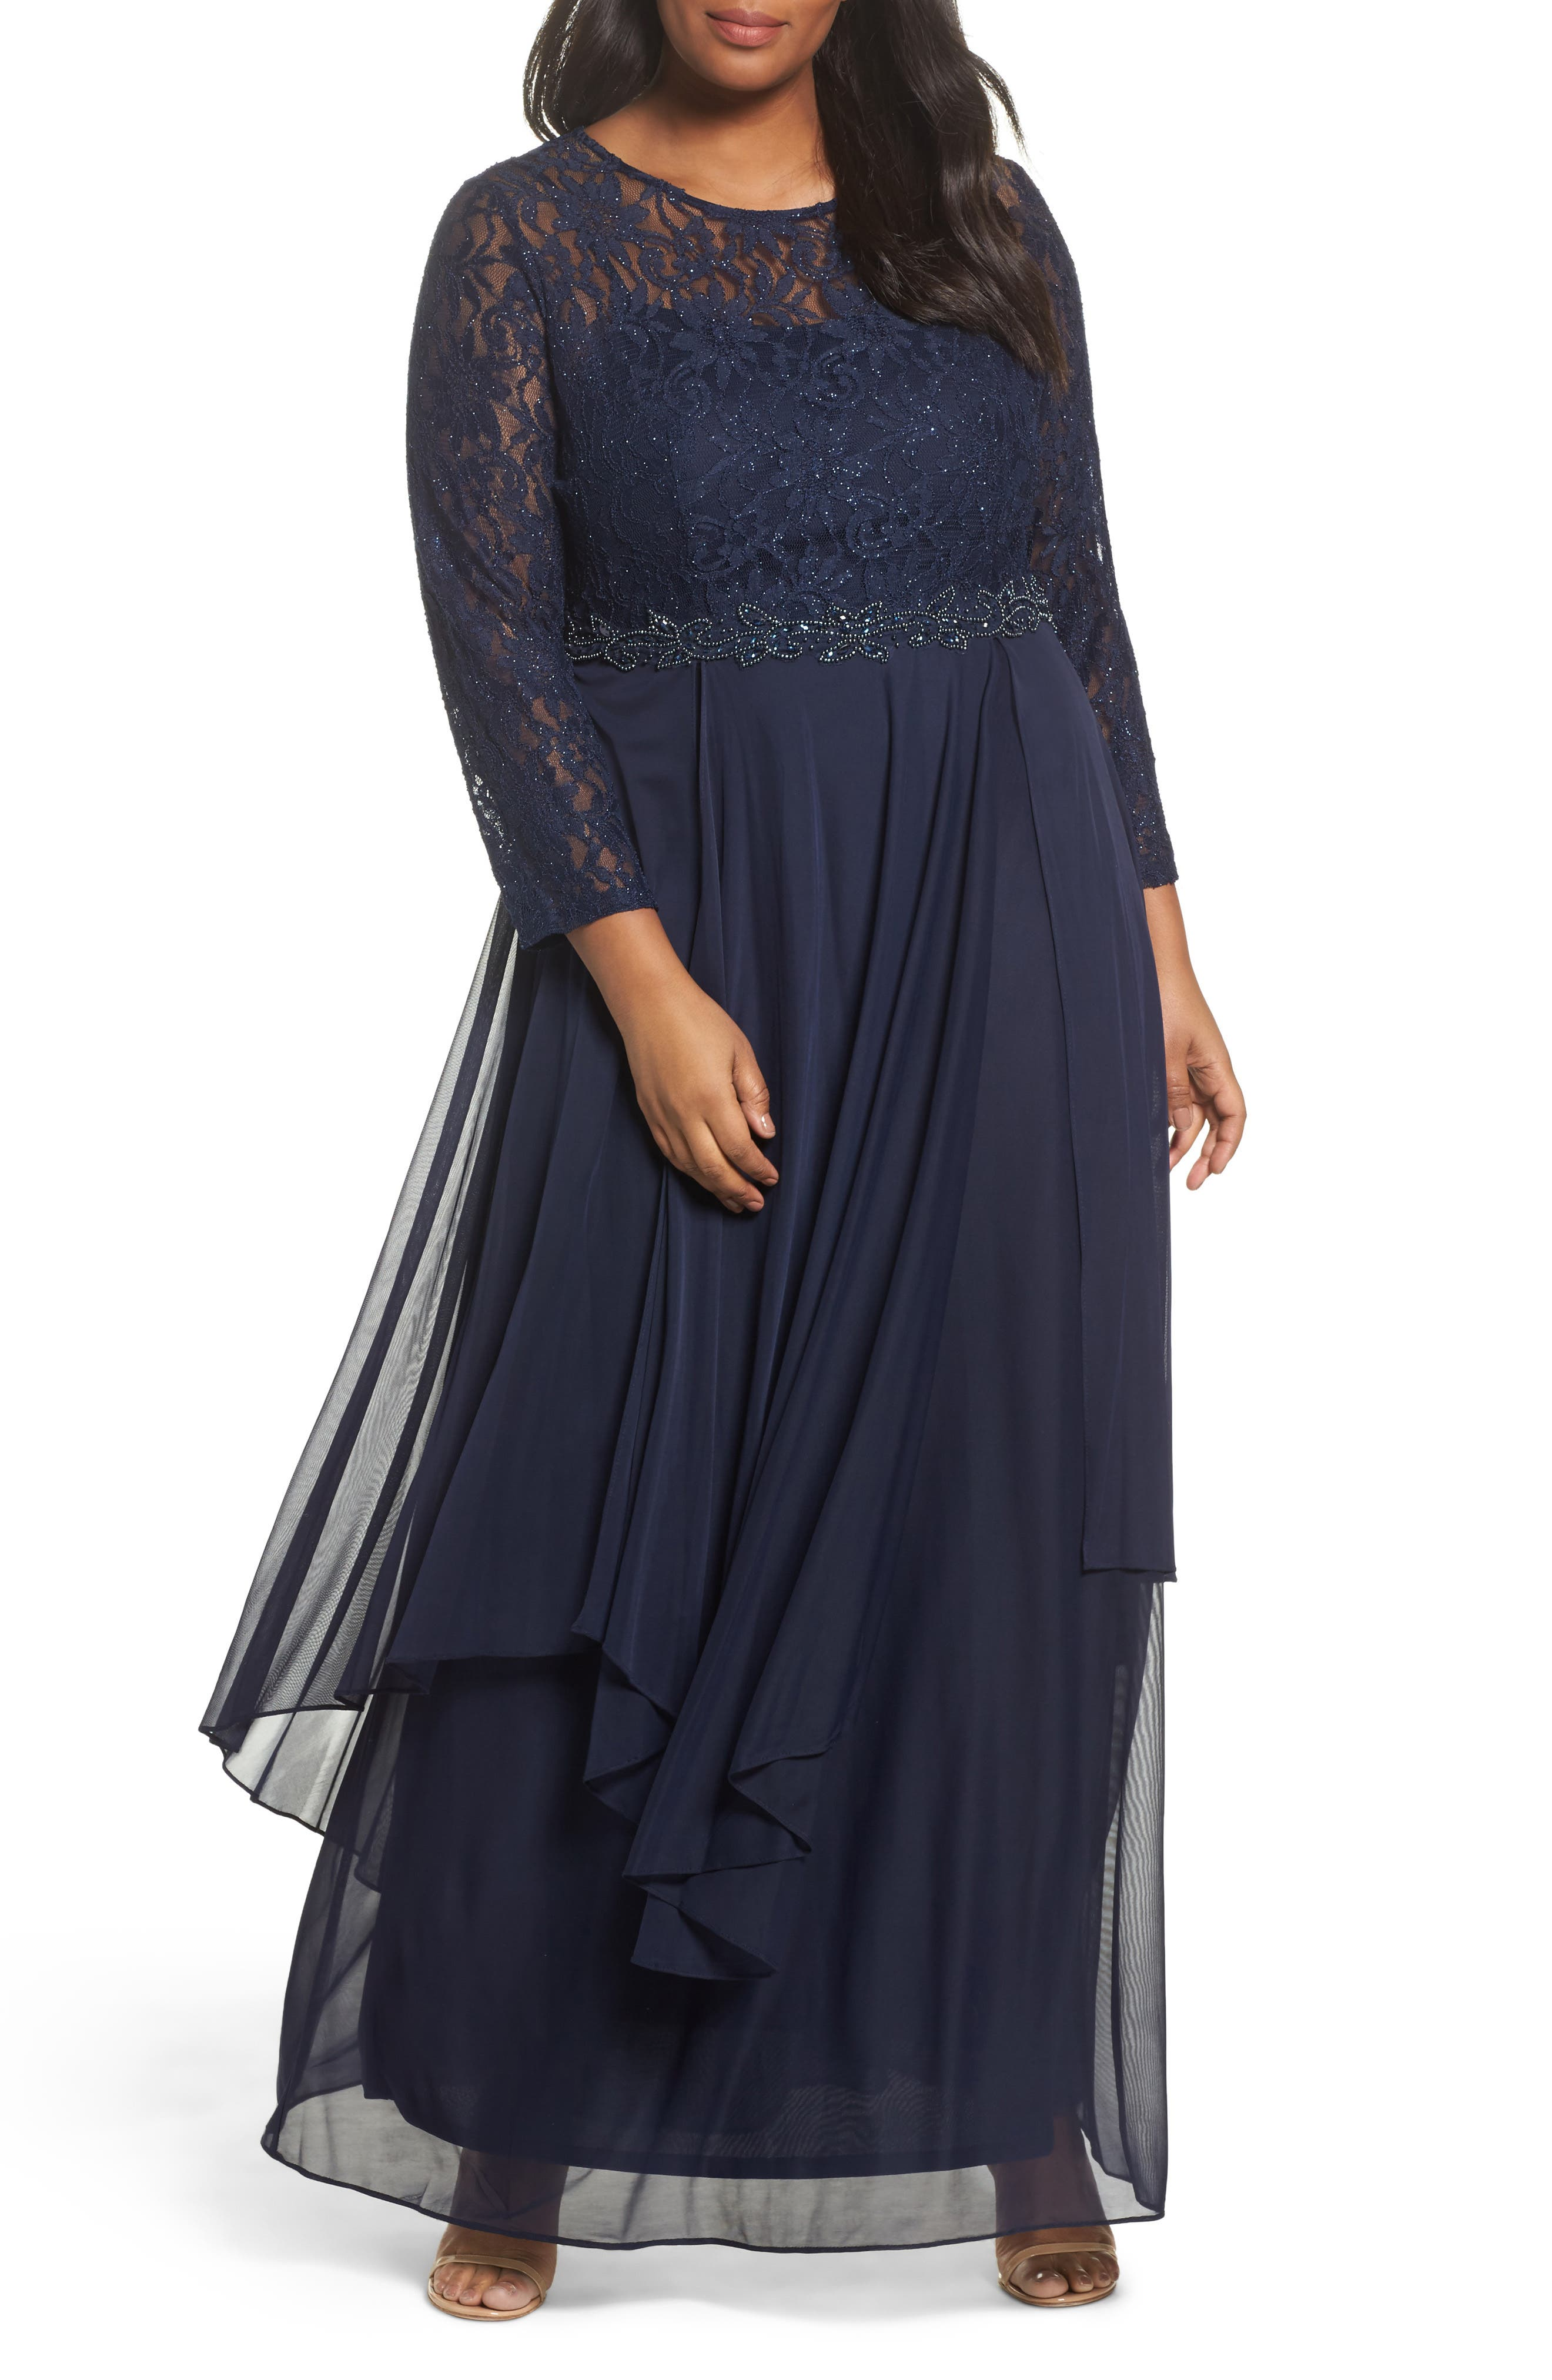 Alternate Image 1 Selected - Decode 1.8 Lace & Mesh Gown (Plus Size)